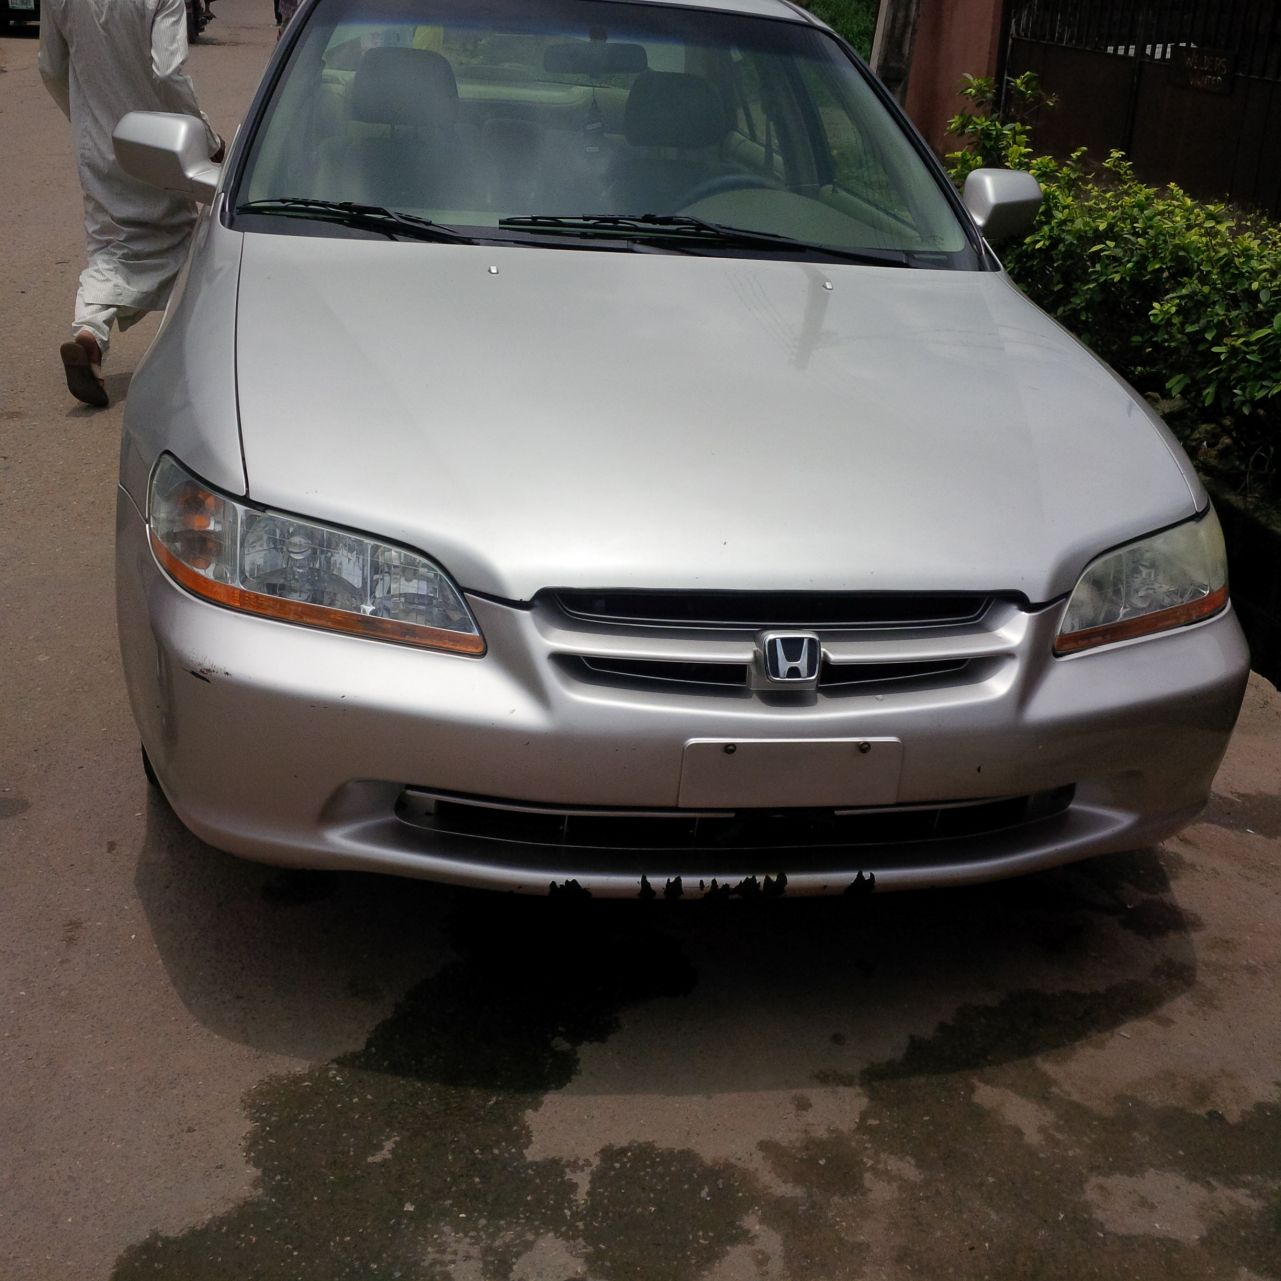 Tokunbo Honda Accord 1999 Model Autos Nigeria Interior The Body And Of Car Is Extrememly Clean It Has A Low Mileage Location This Gbagada Serious Buyers Should Contact Me